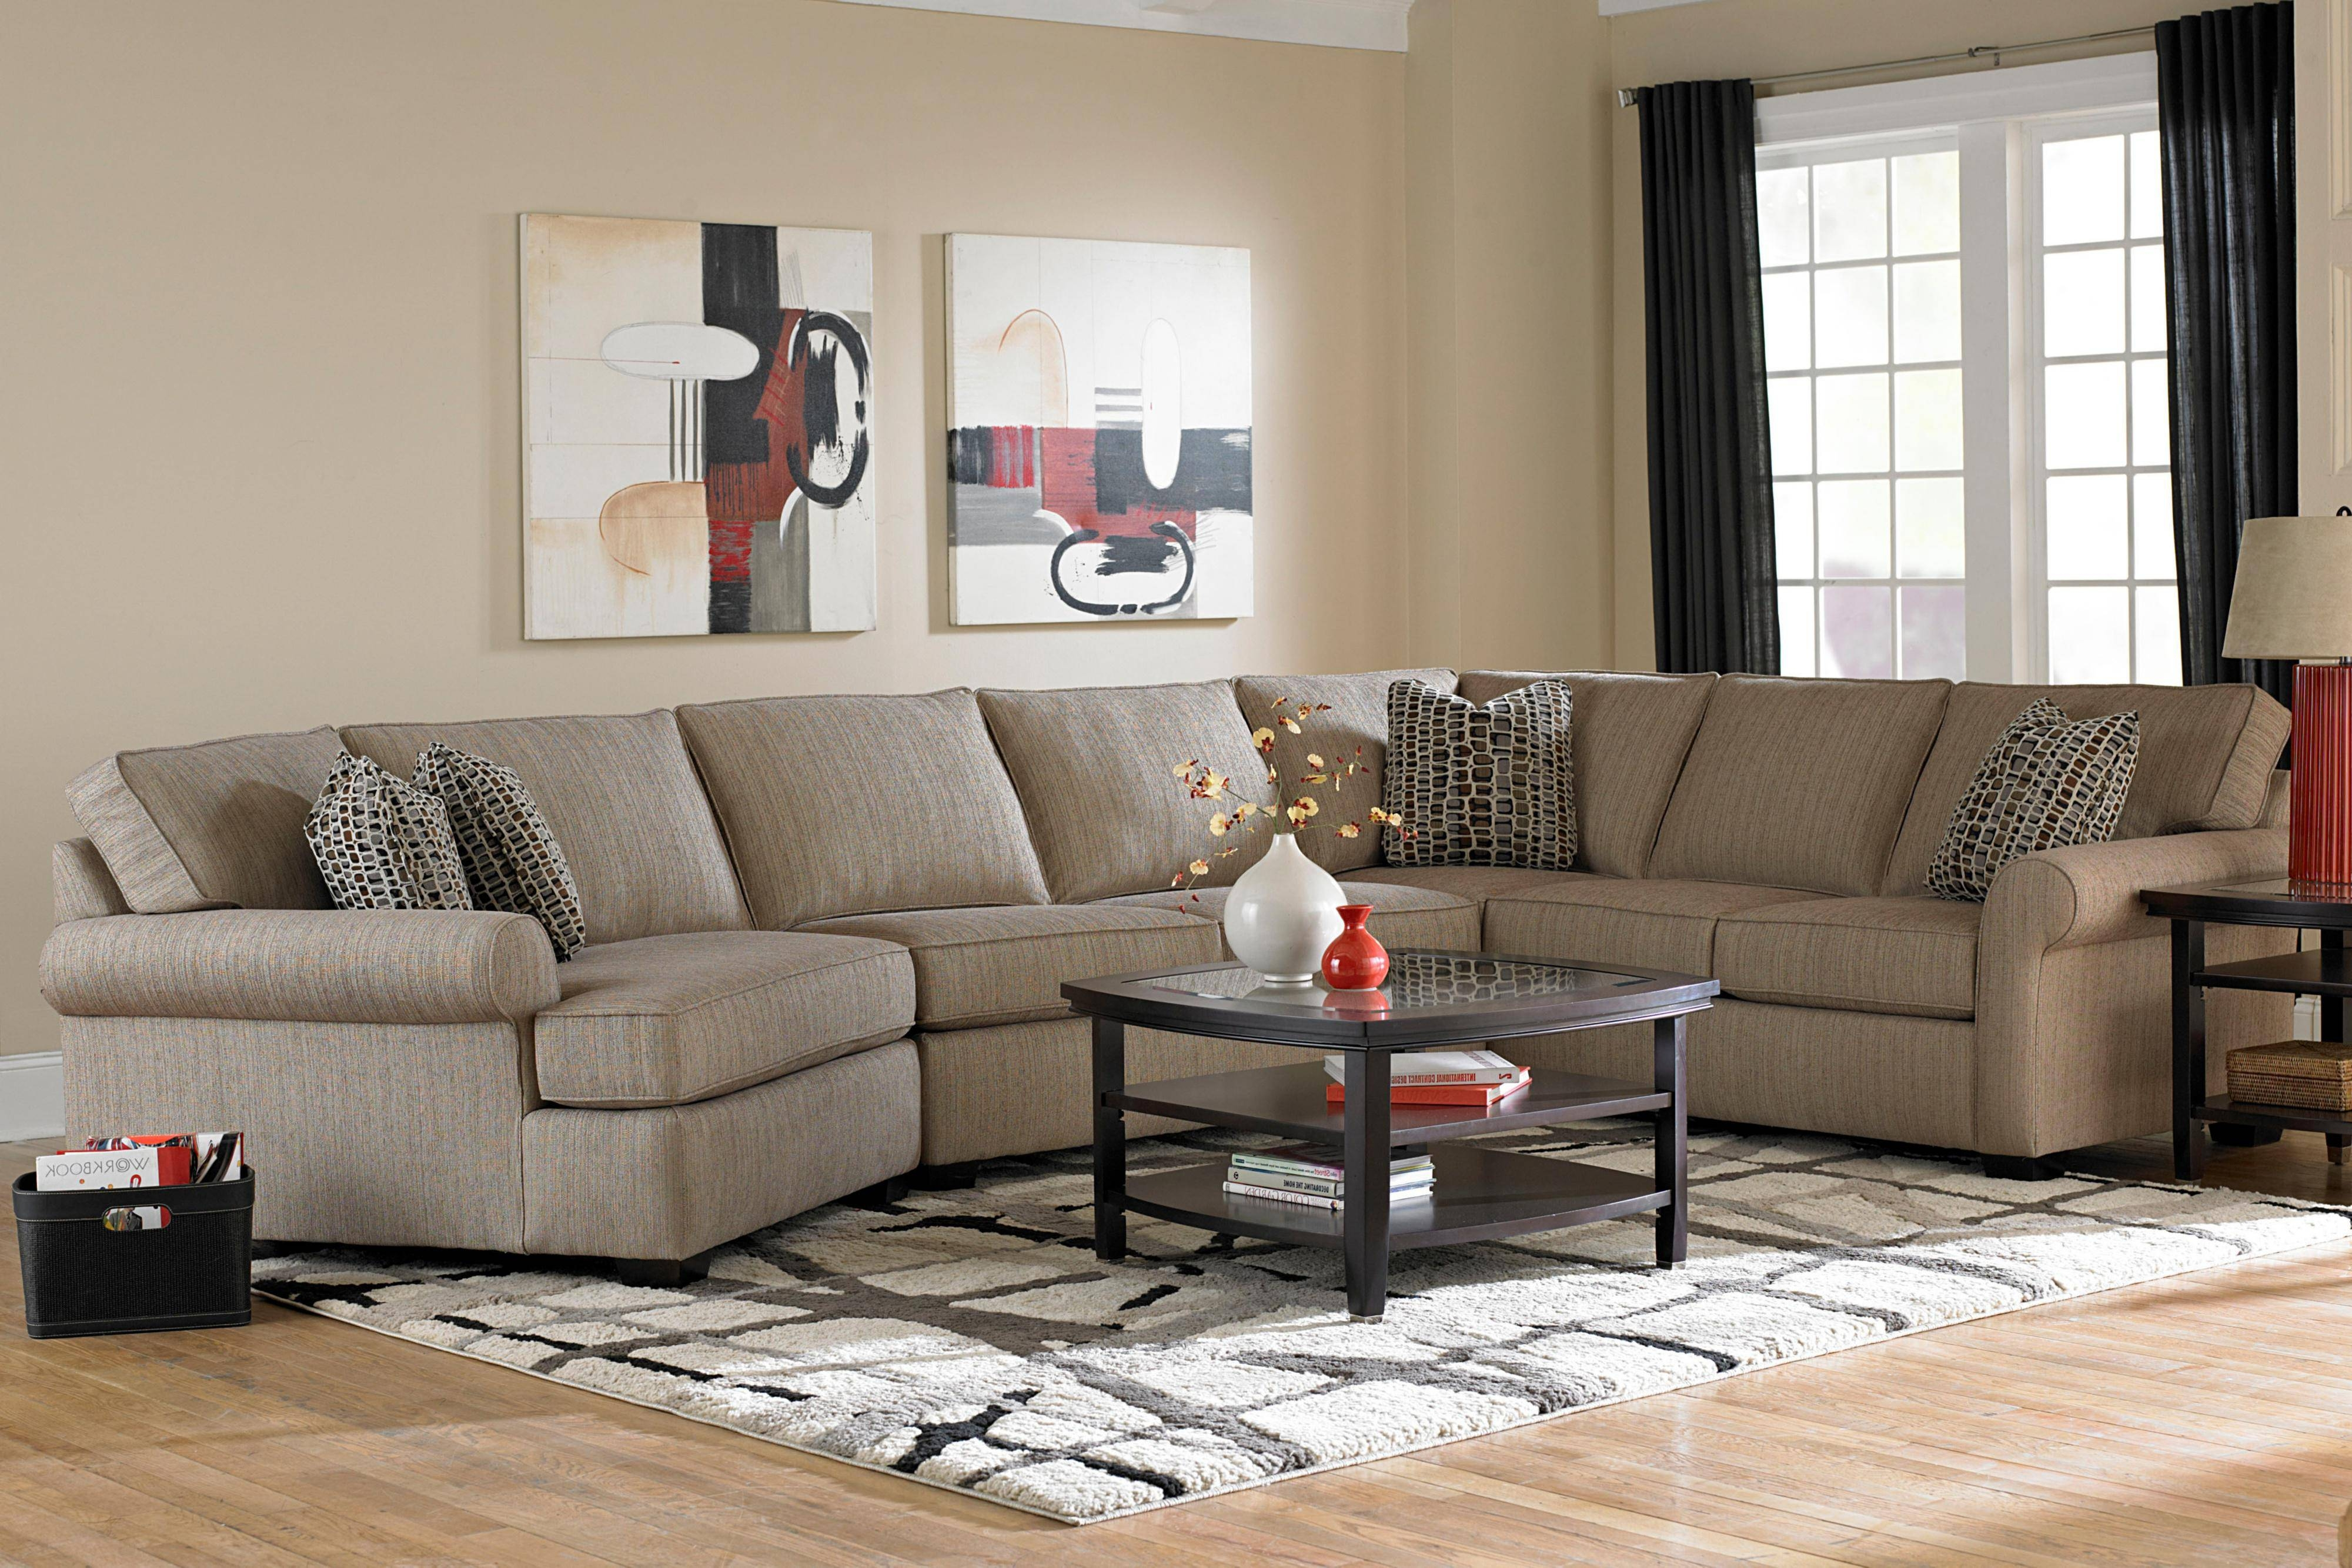 Broyhill Furniture Ethan Transitional Sectional Sofa With Left pertaining to Slumberland Couches (Image 9 of 15)